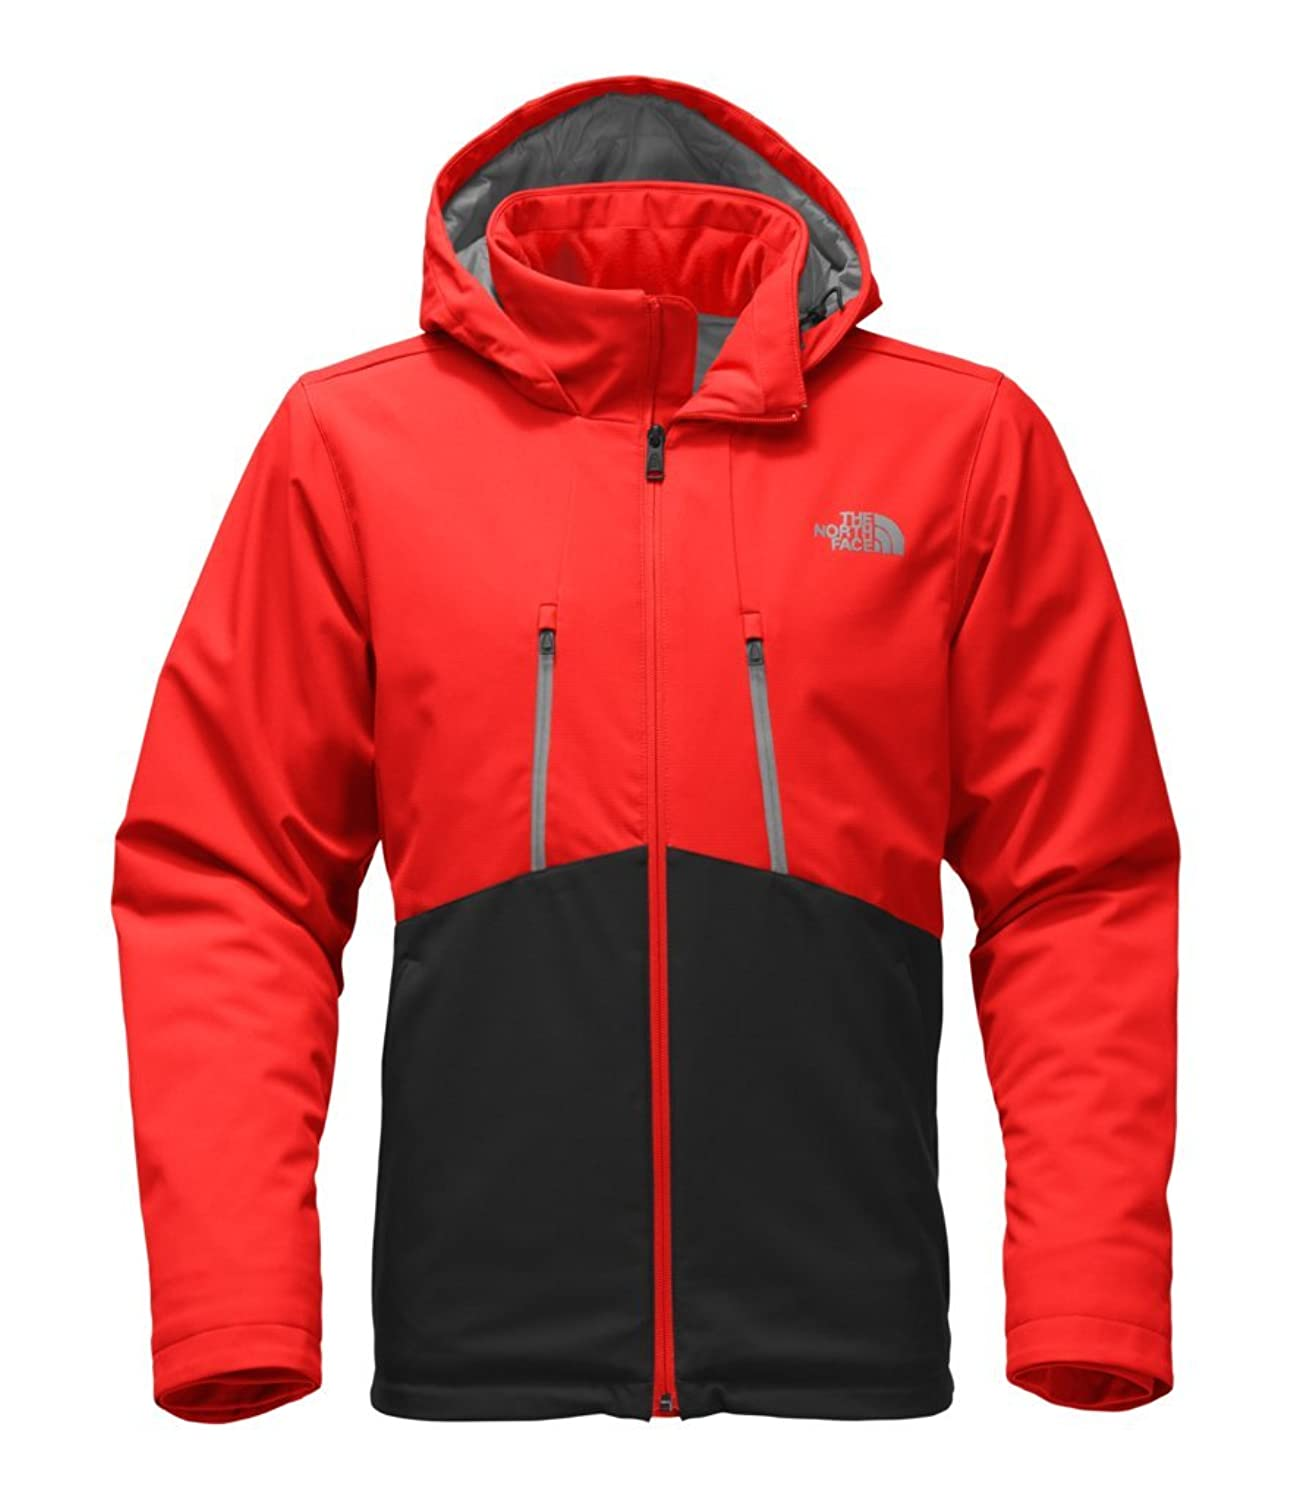 Amazon.com: The North Face Men's Resolve 2 Jacket: Sports & Outdoors